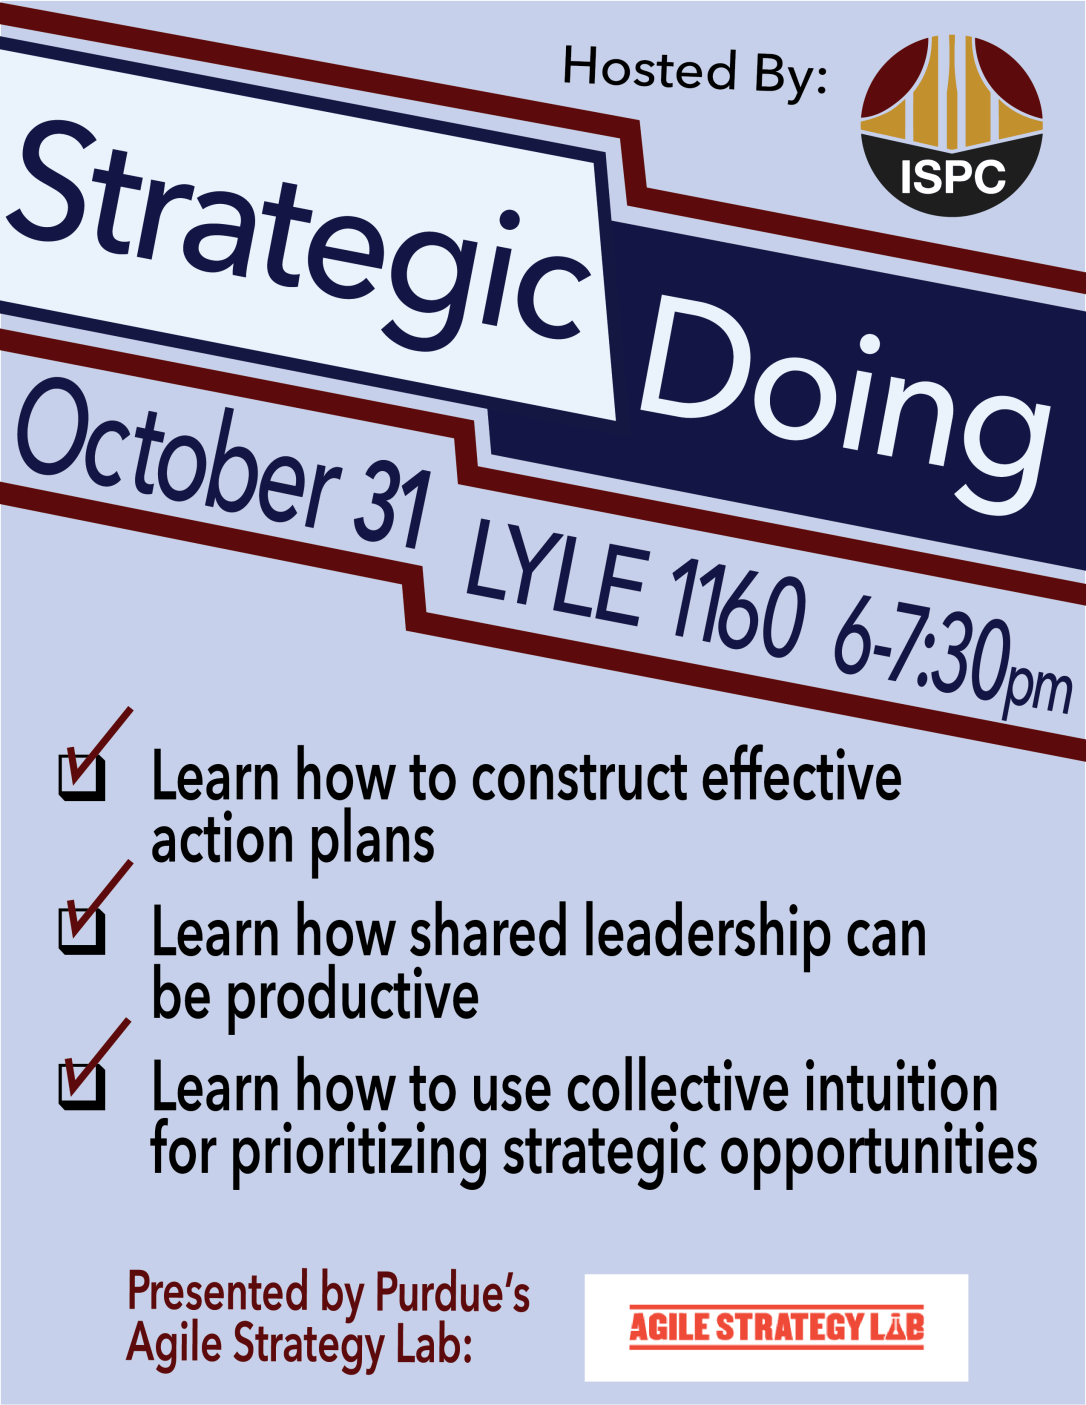 strategic doing-01